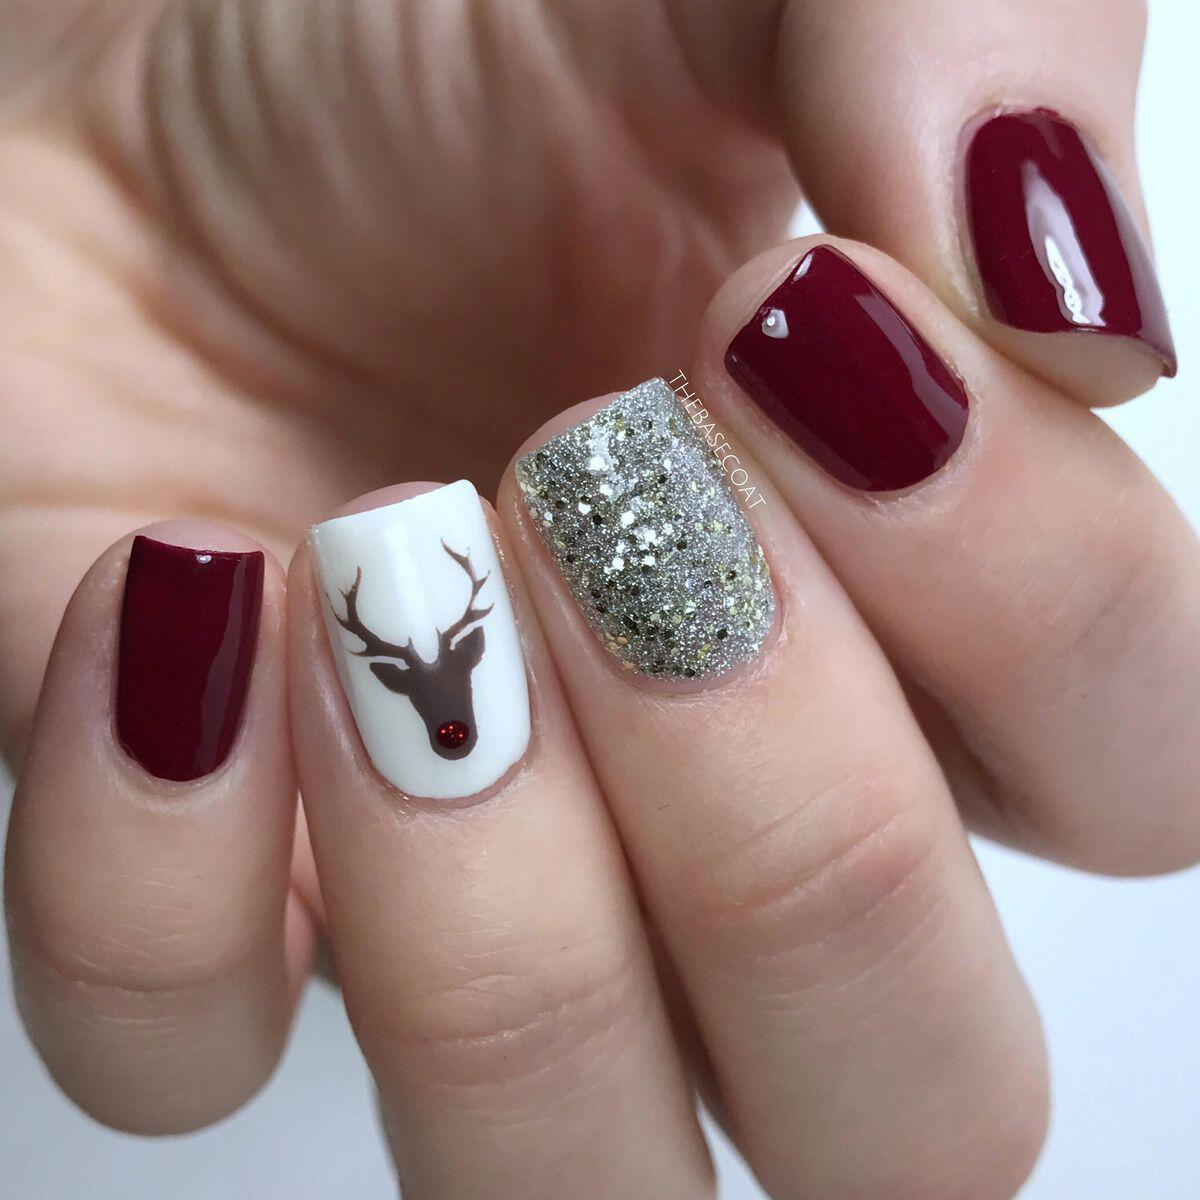 25 christmas nails to get ideas from 19 - 25 Christmas nails to get ideas from